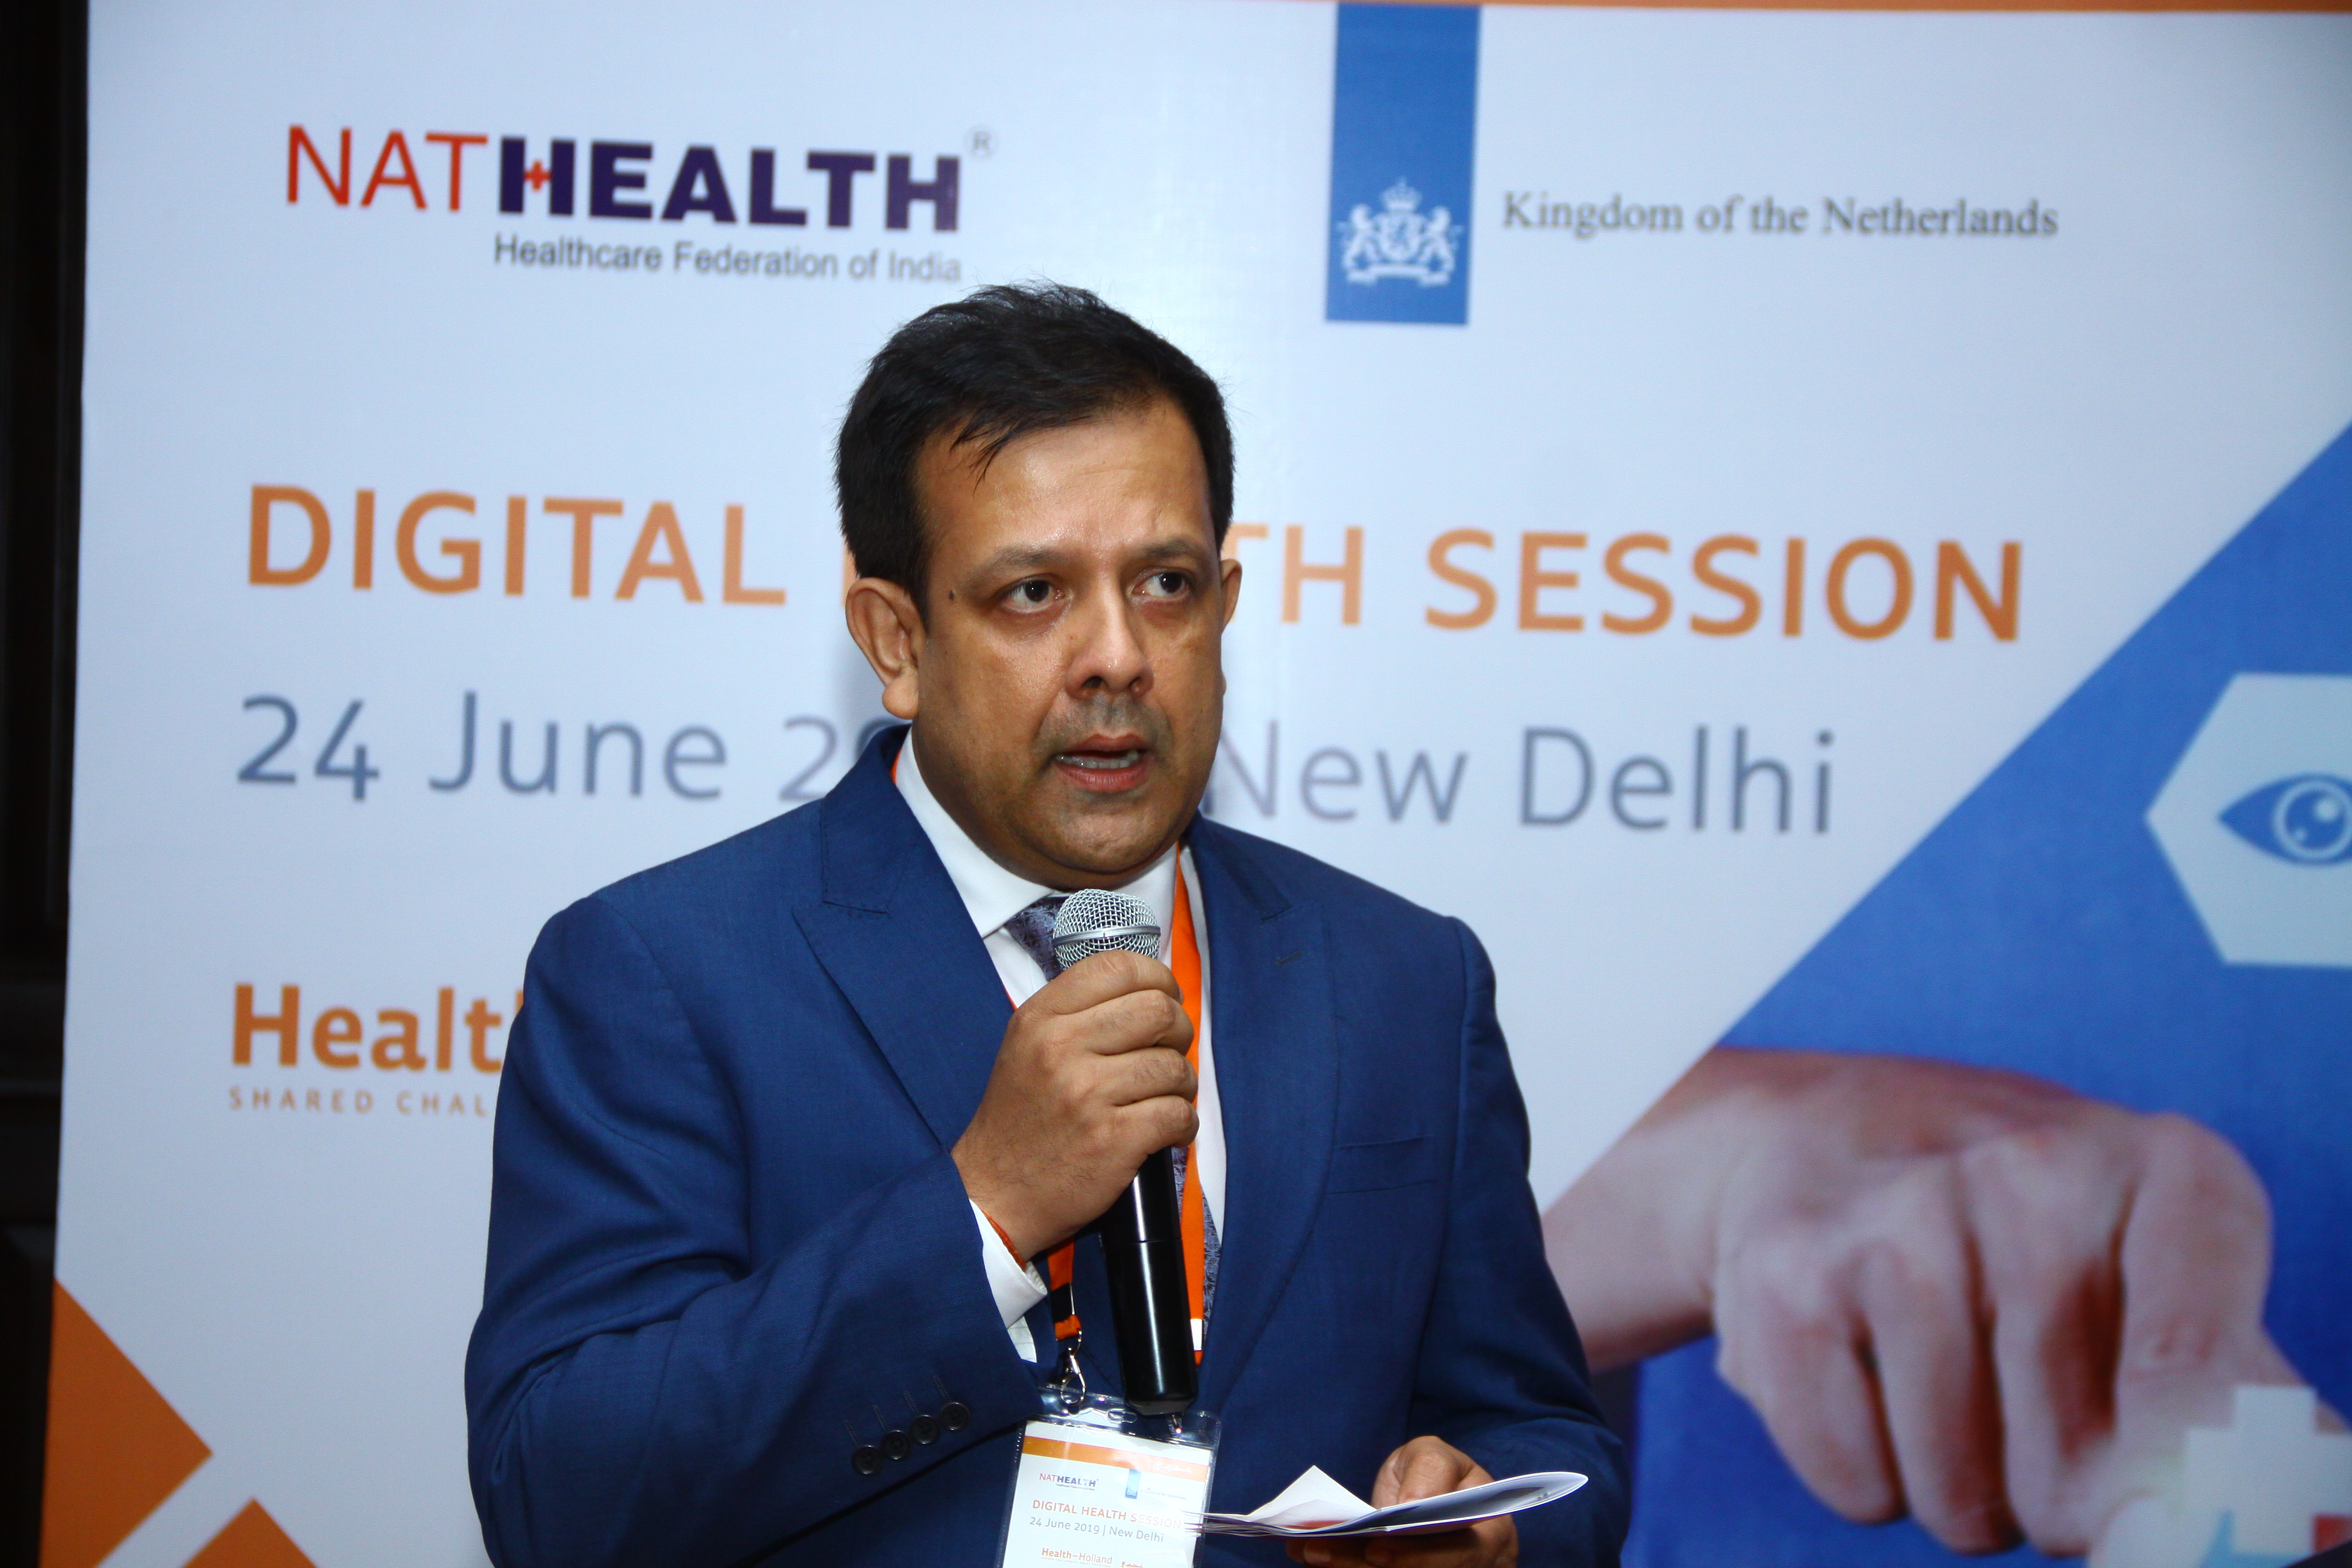 Healthcare Federation of India: Gallery